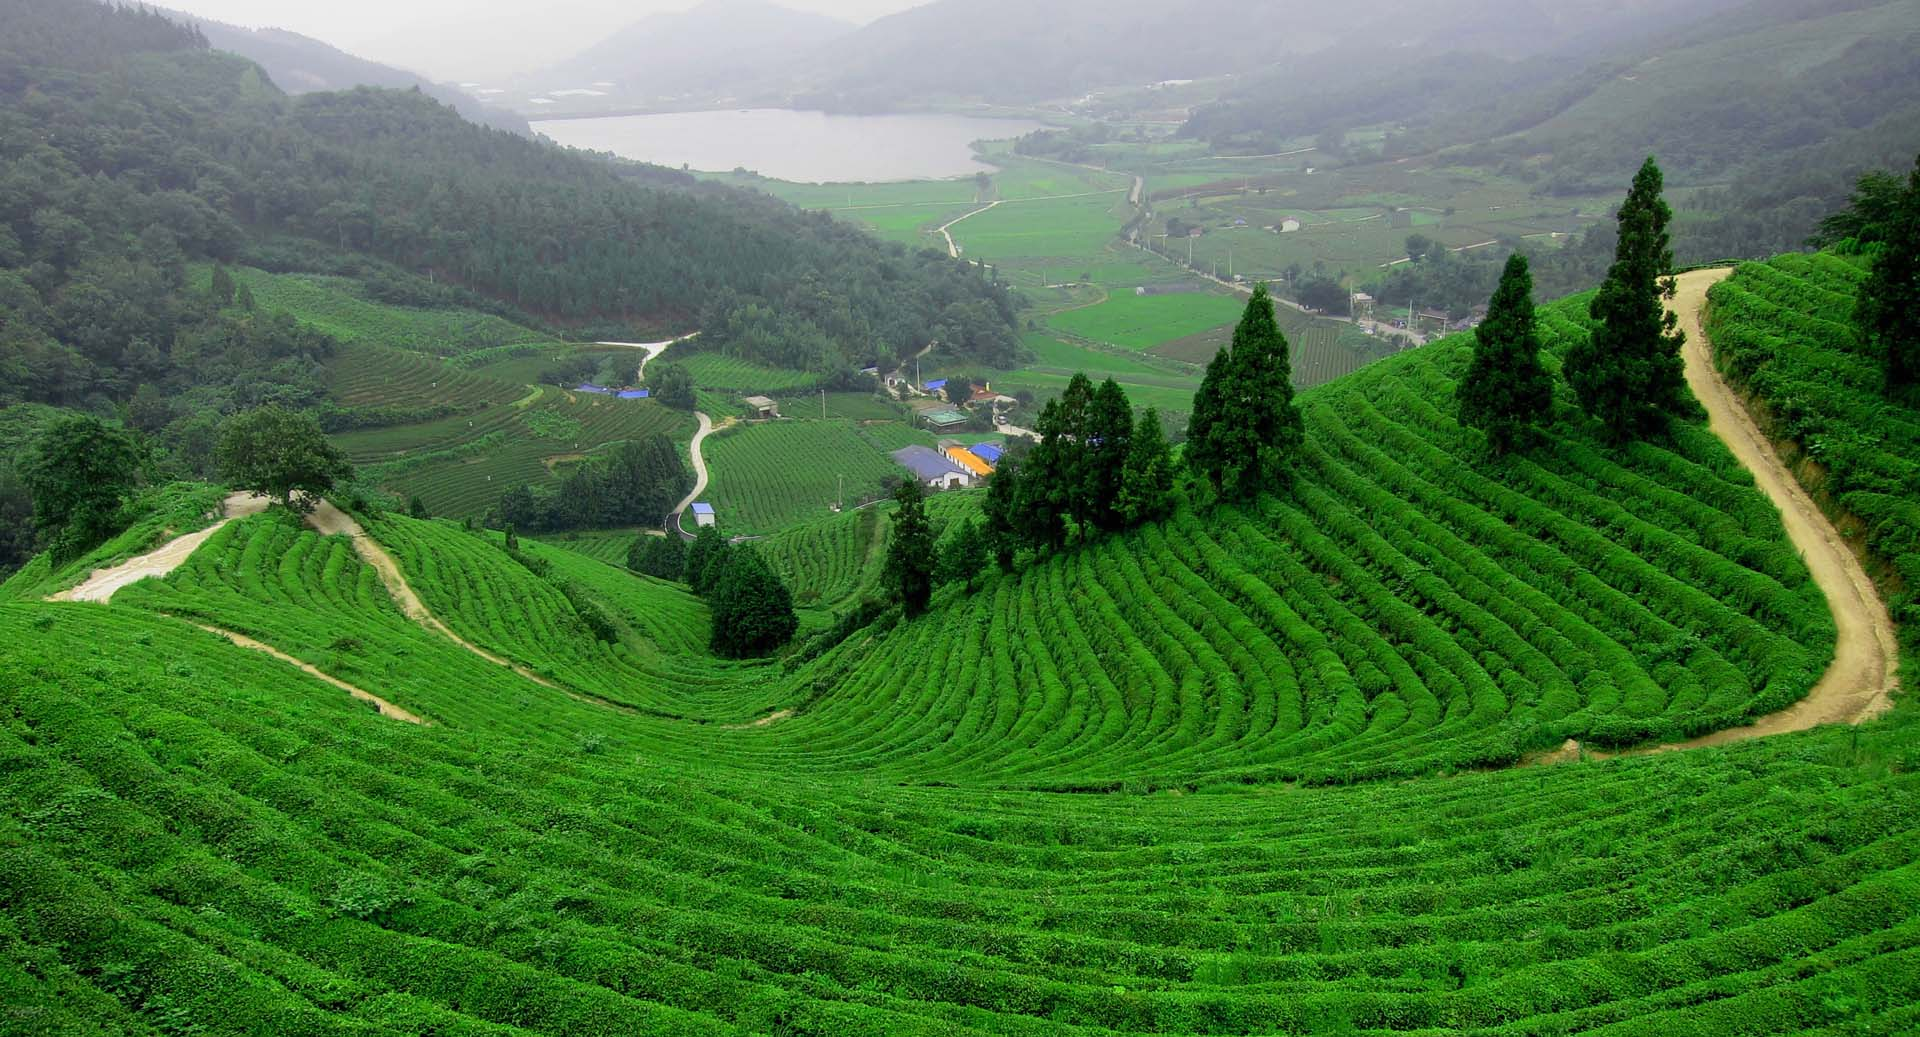 boseong-green-tea-field-20101